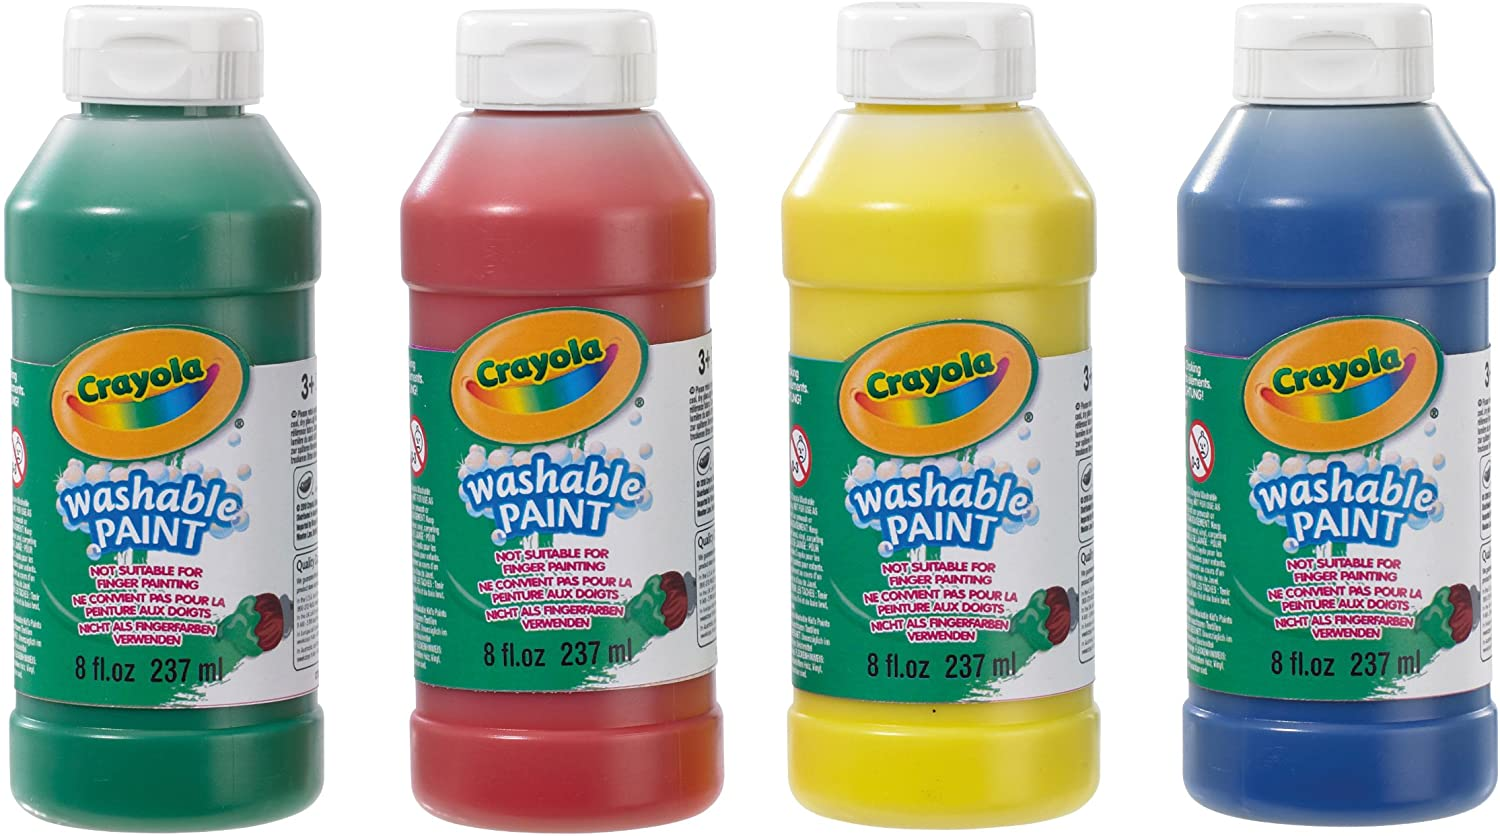 Crayola 4 Pack Washable Ready Mix Paint